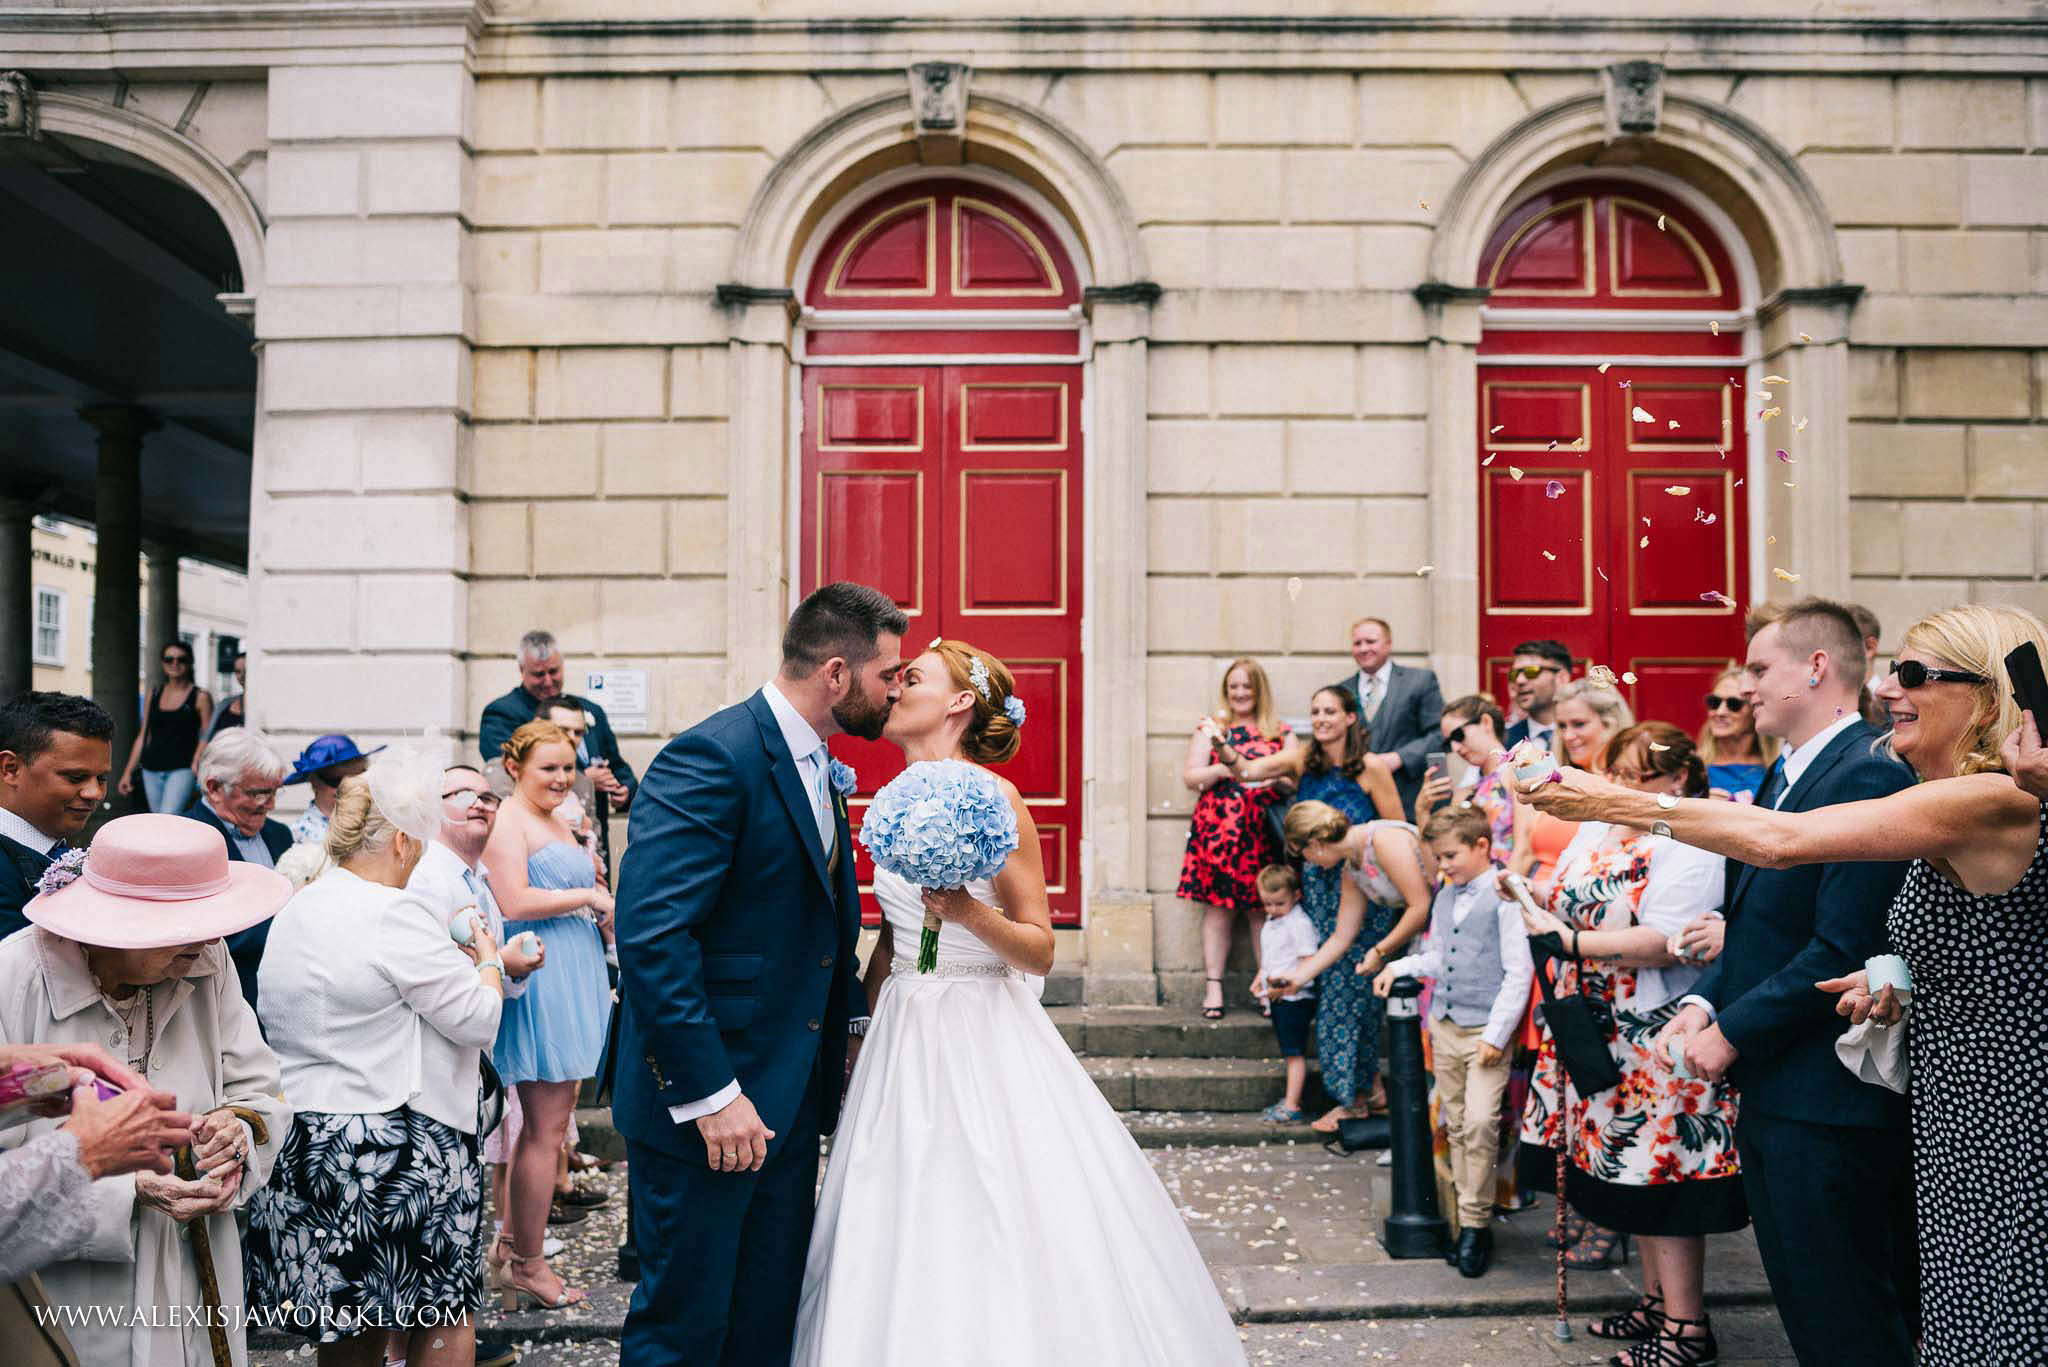 kissing outside the guildhall doors